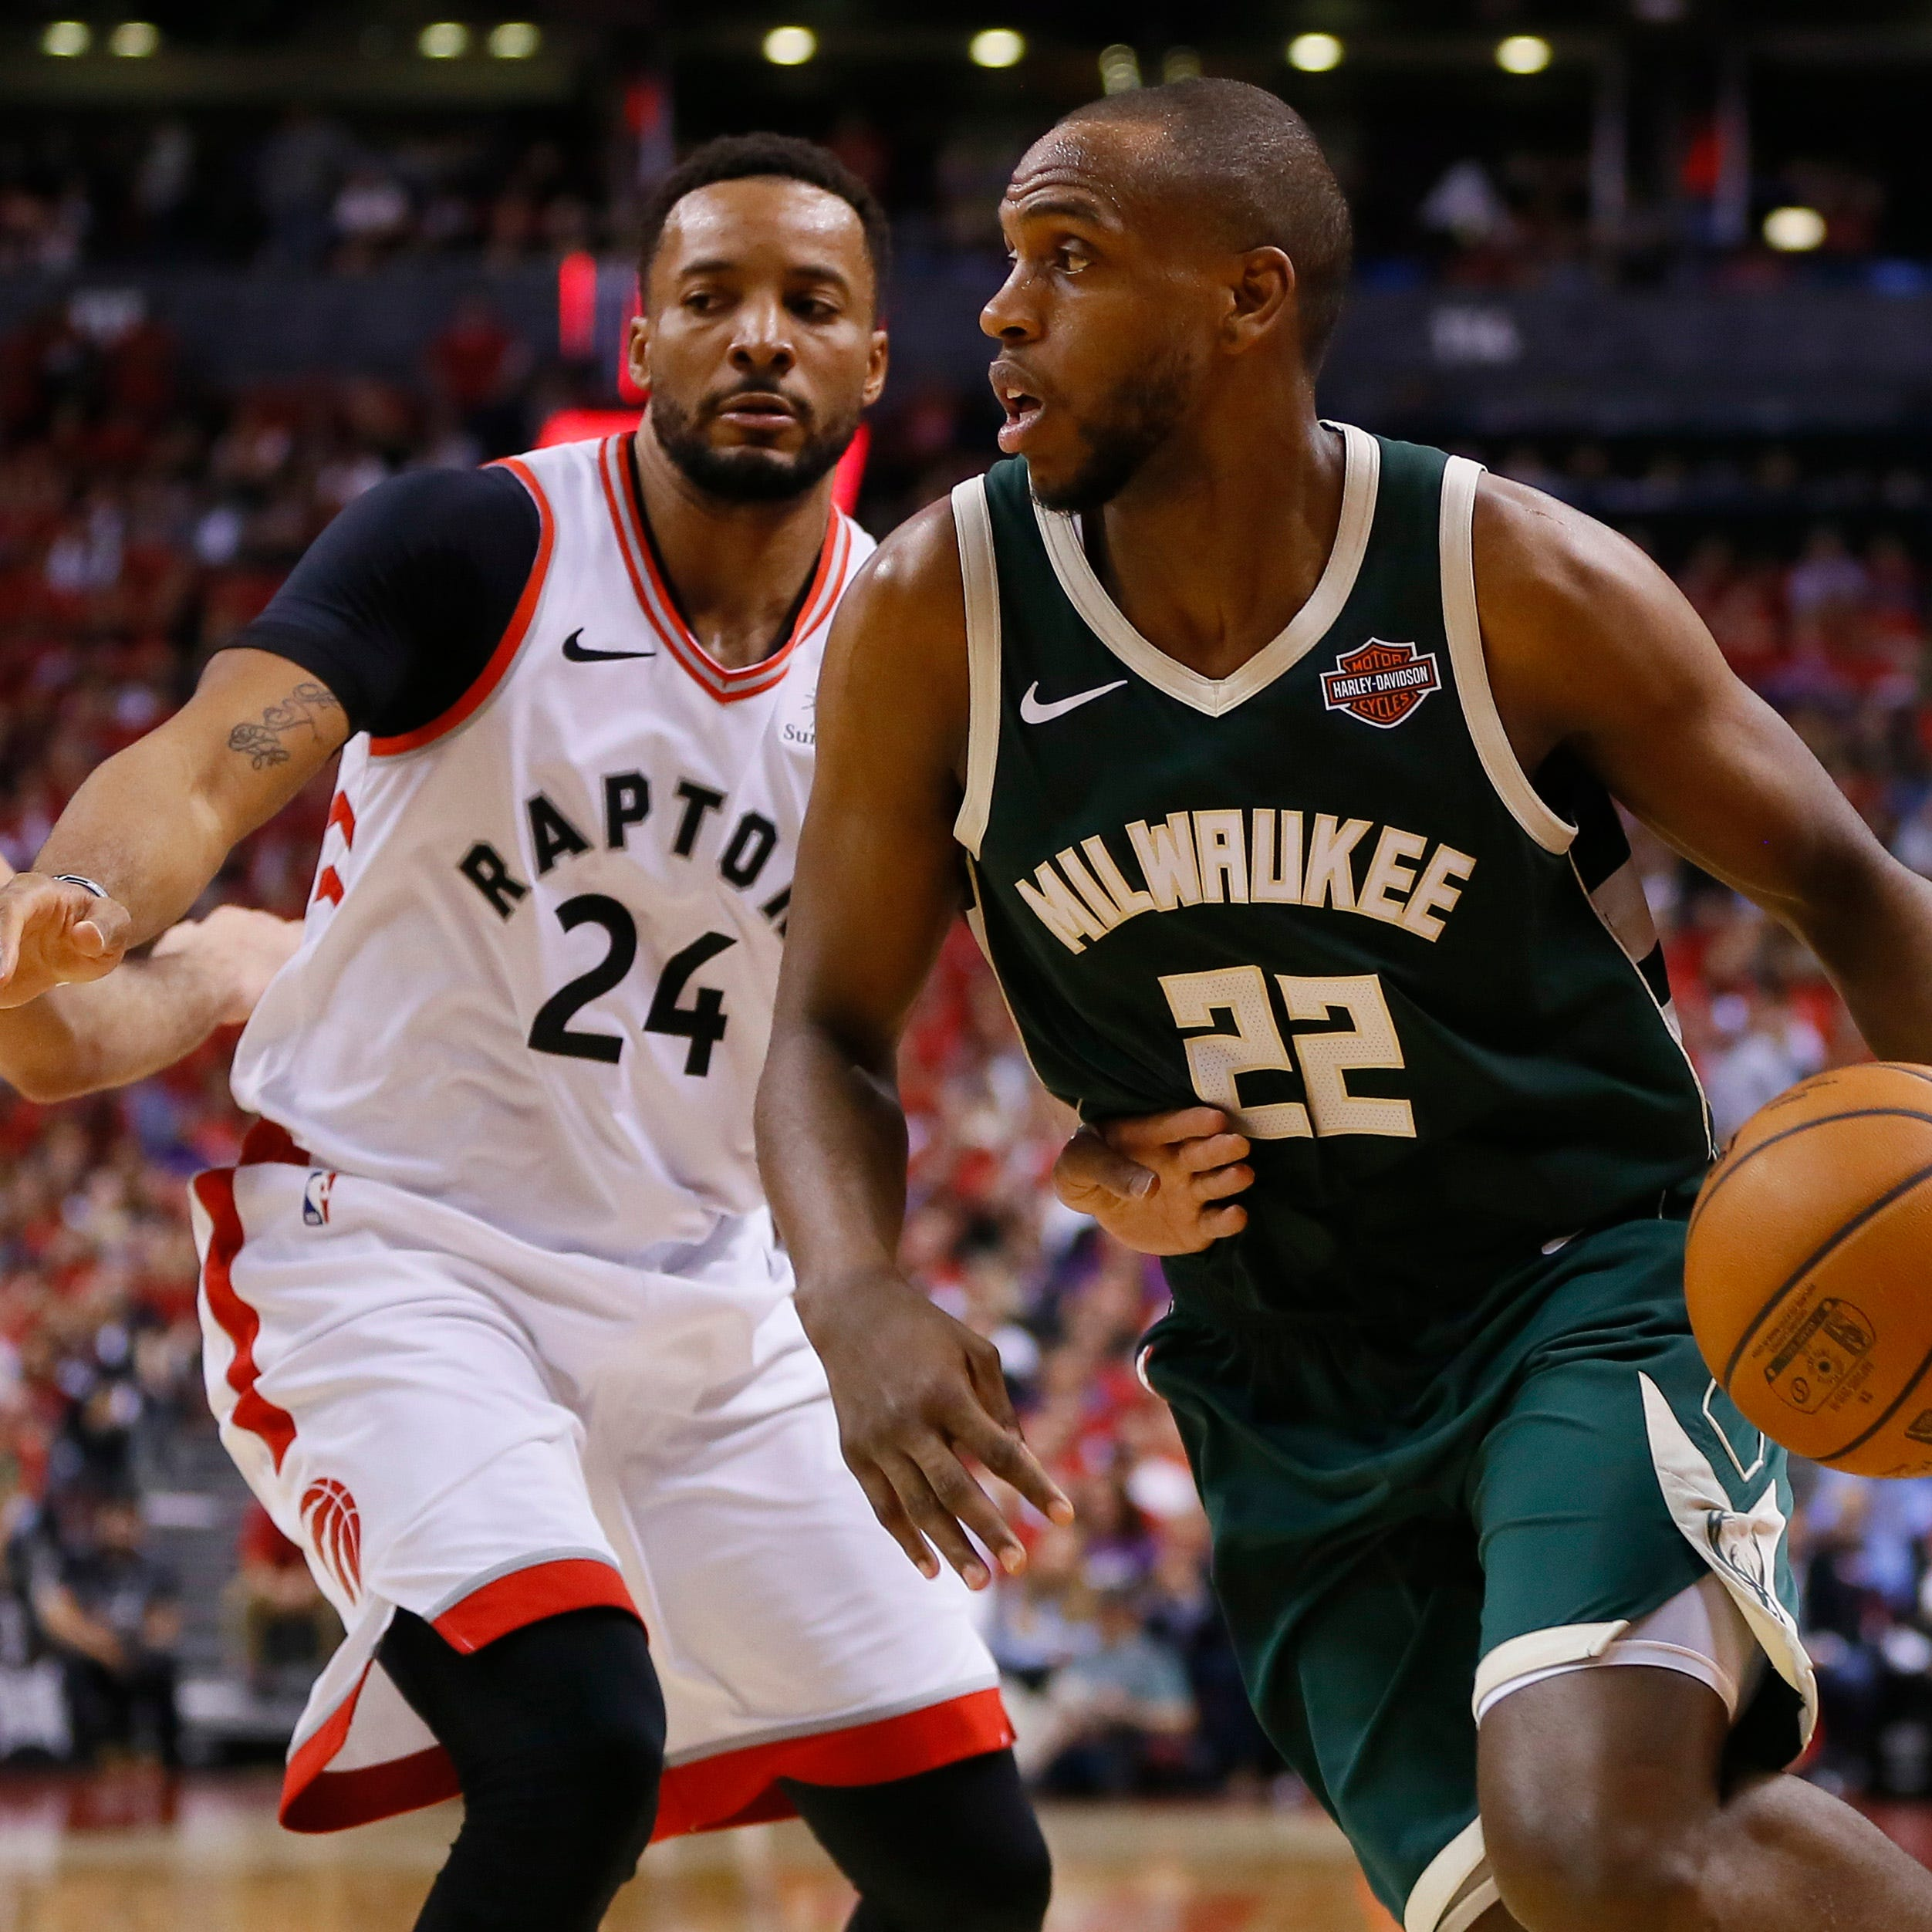 Everything you need for Game 5 of the playoff series between the Raptors and Bucks in Milwaukee